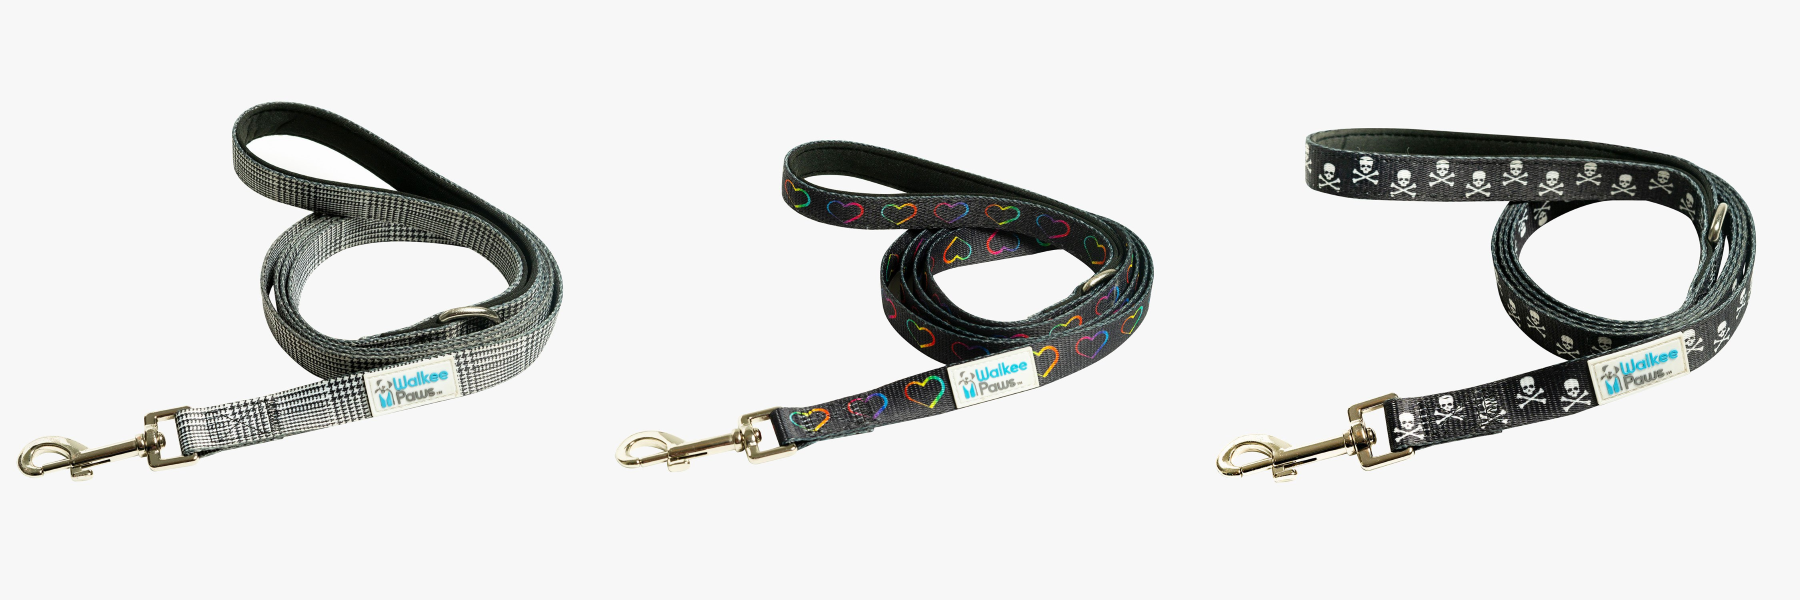 Walkee Paws Patterned Dog Leash - Different Models